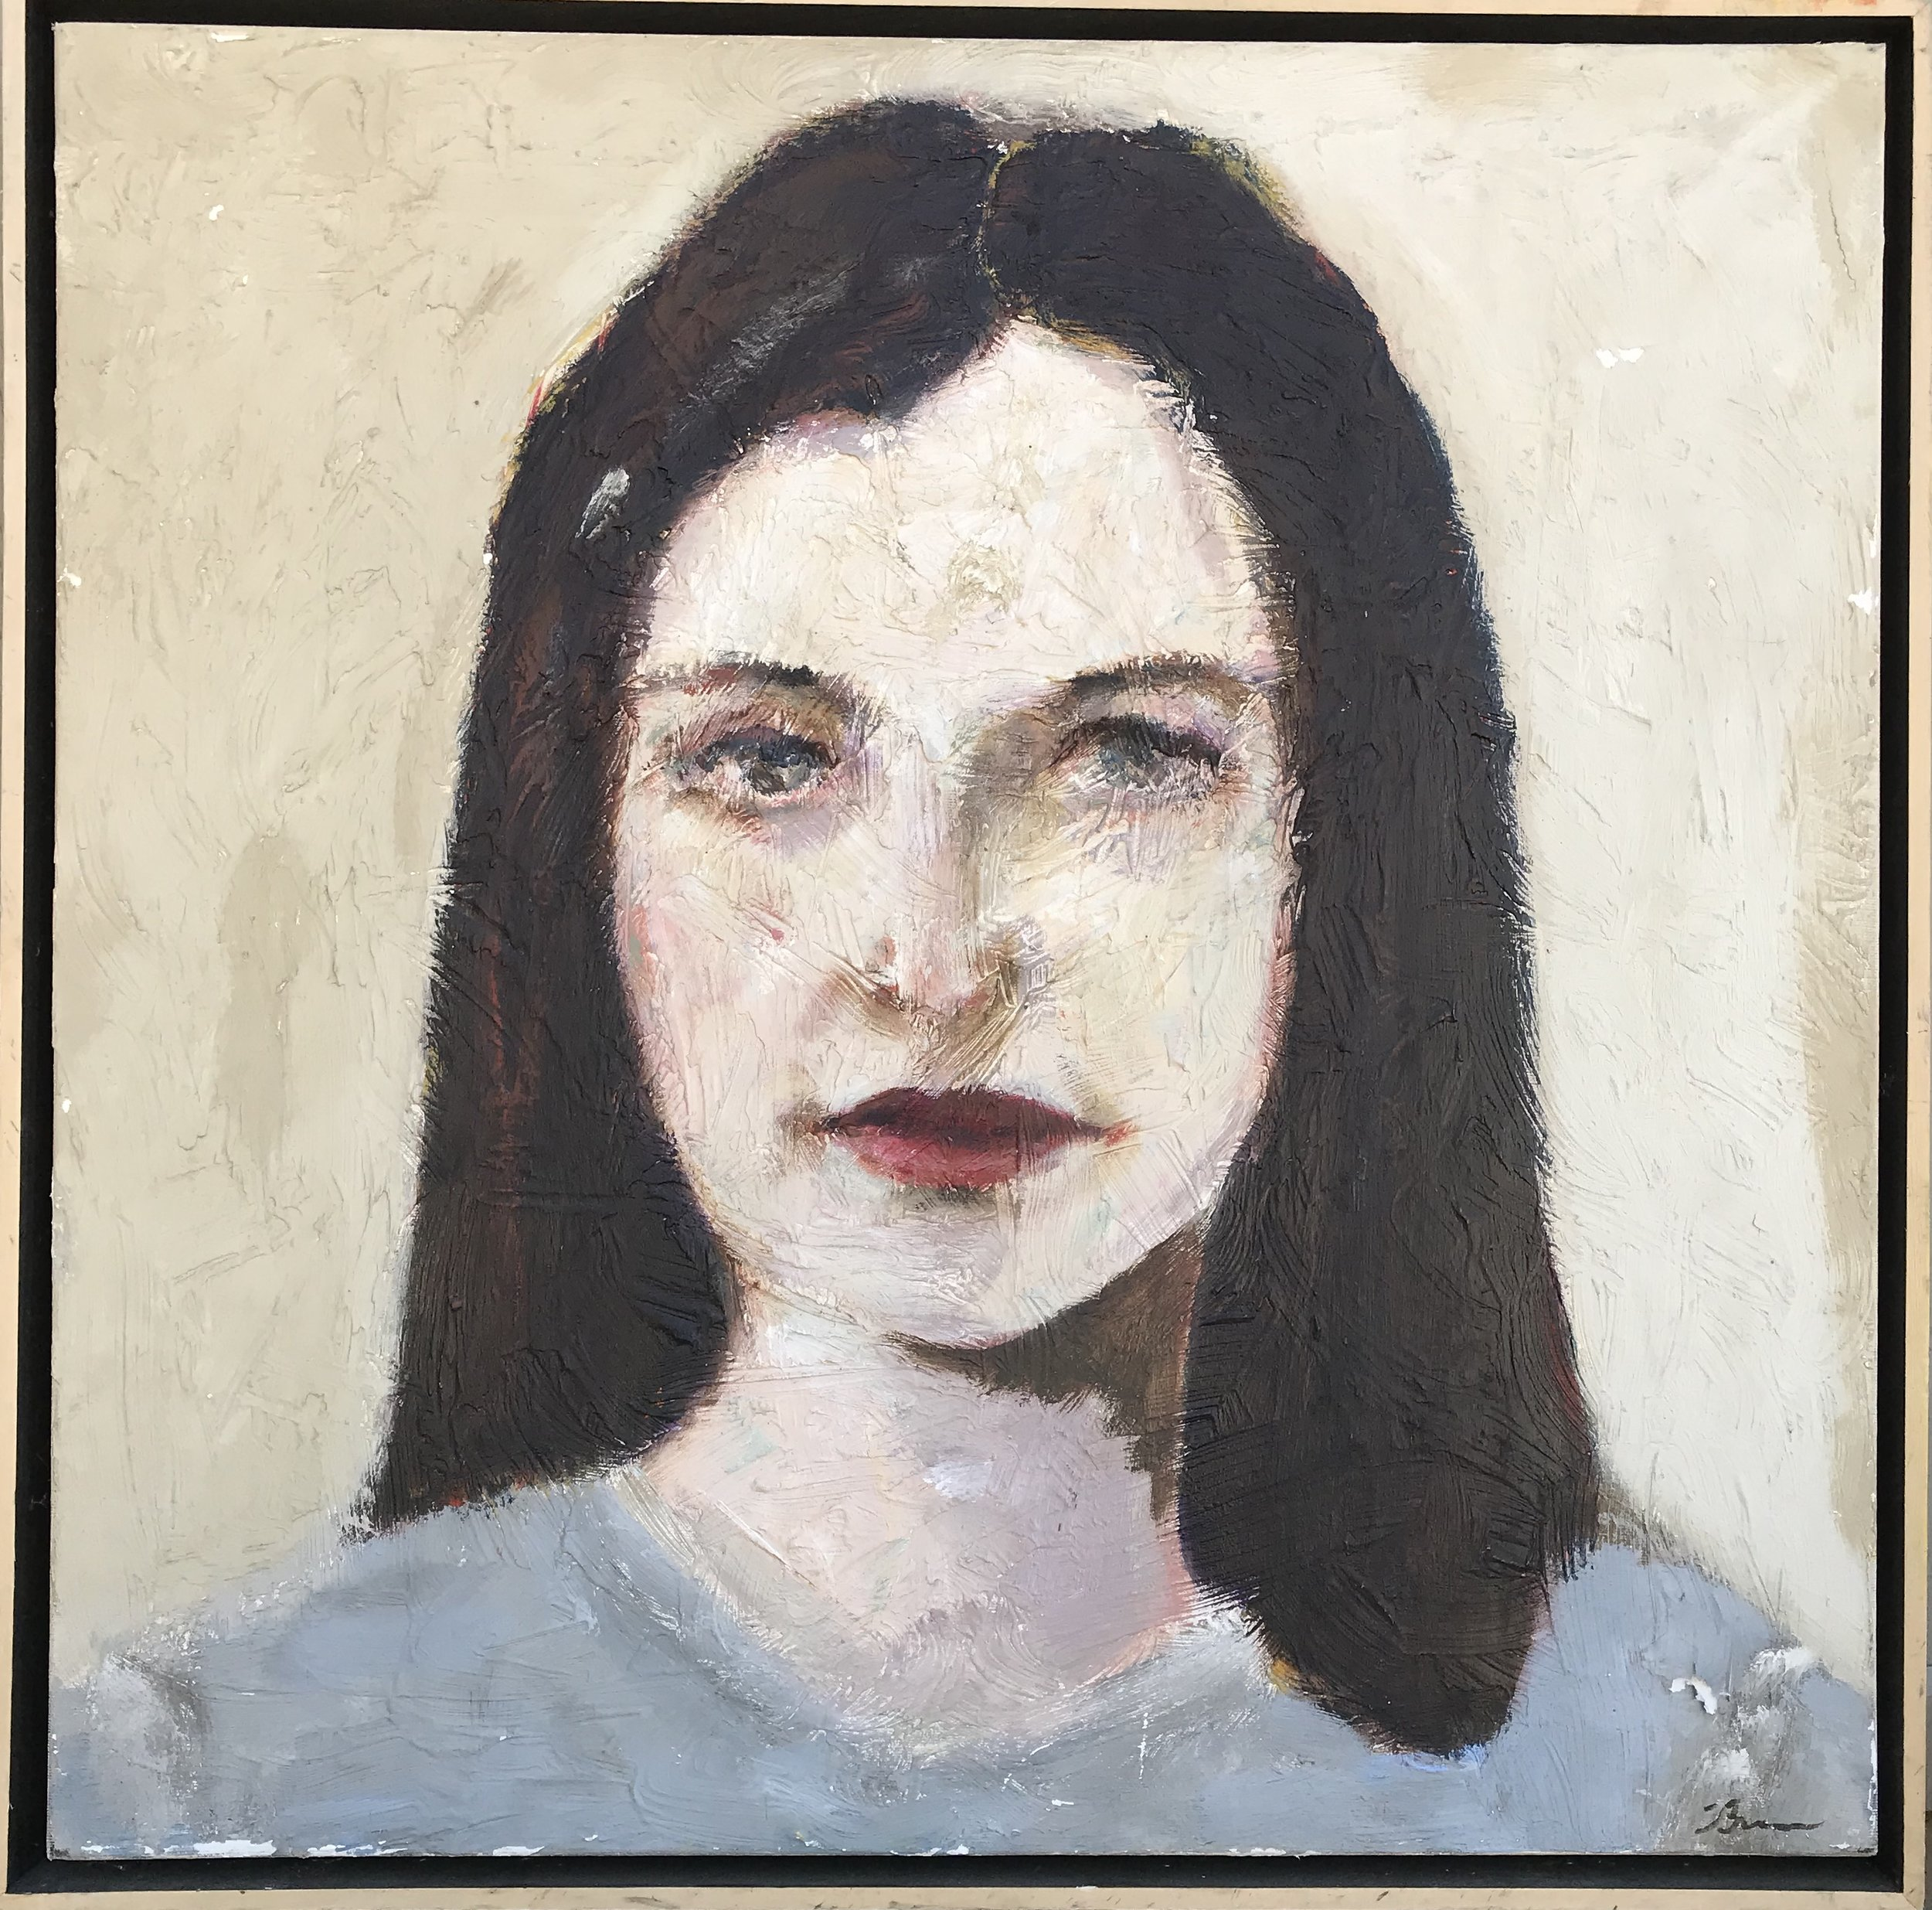 """""""Serious Serena"""" - 24"""" x 24"""" in 2 1/2""""wood floater frame, oil on canvasValue: $2,650Opening bid: $1,050email your bid to: art@bradfordbrenner.com"""